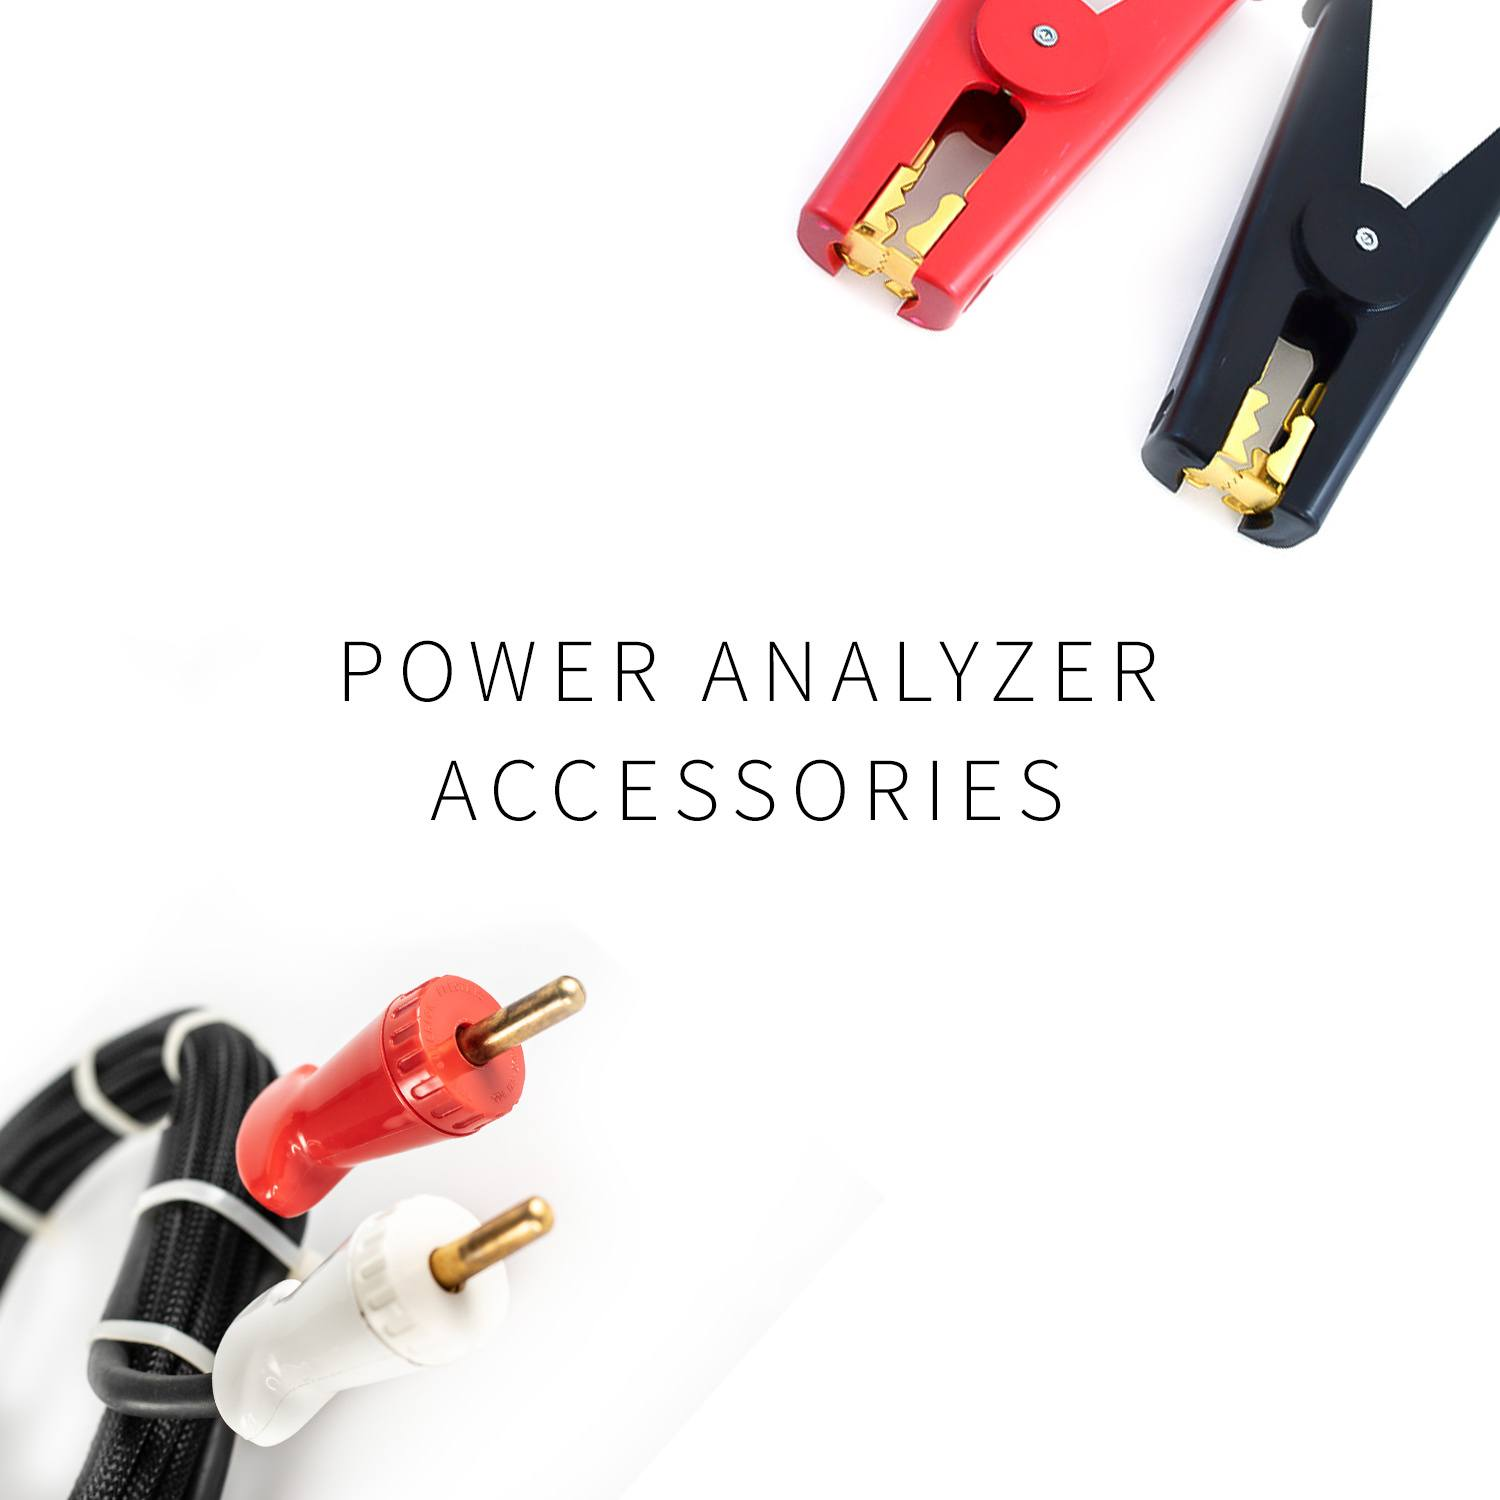 Power Analyzer Accessories